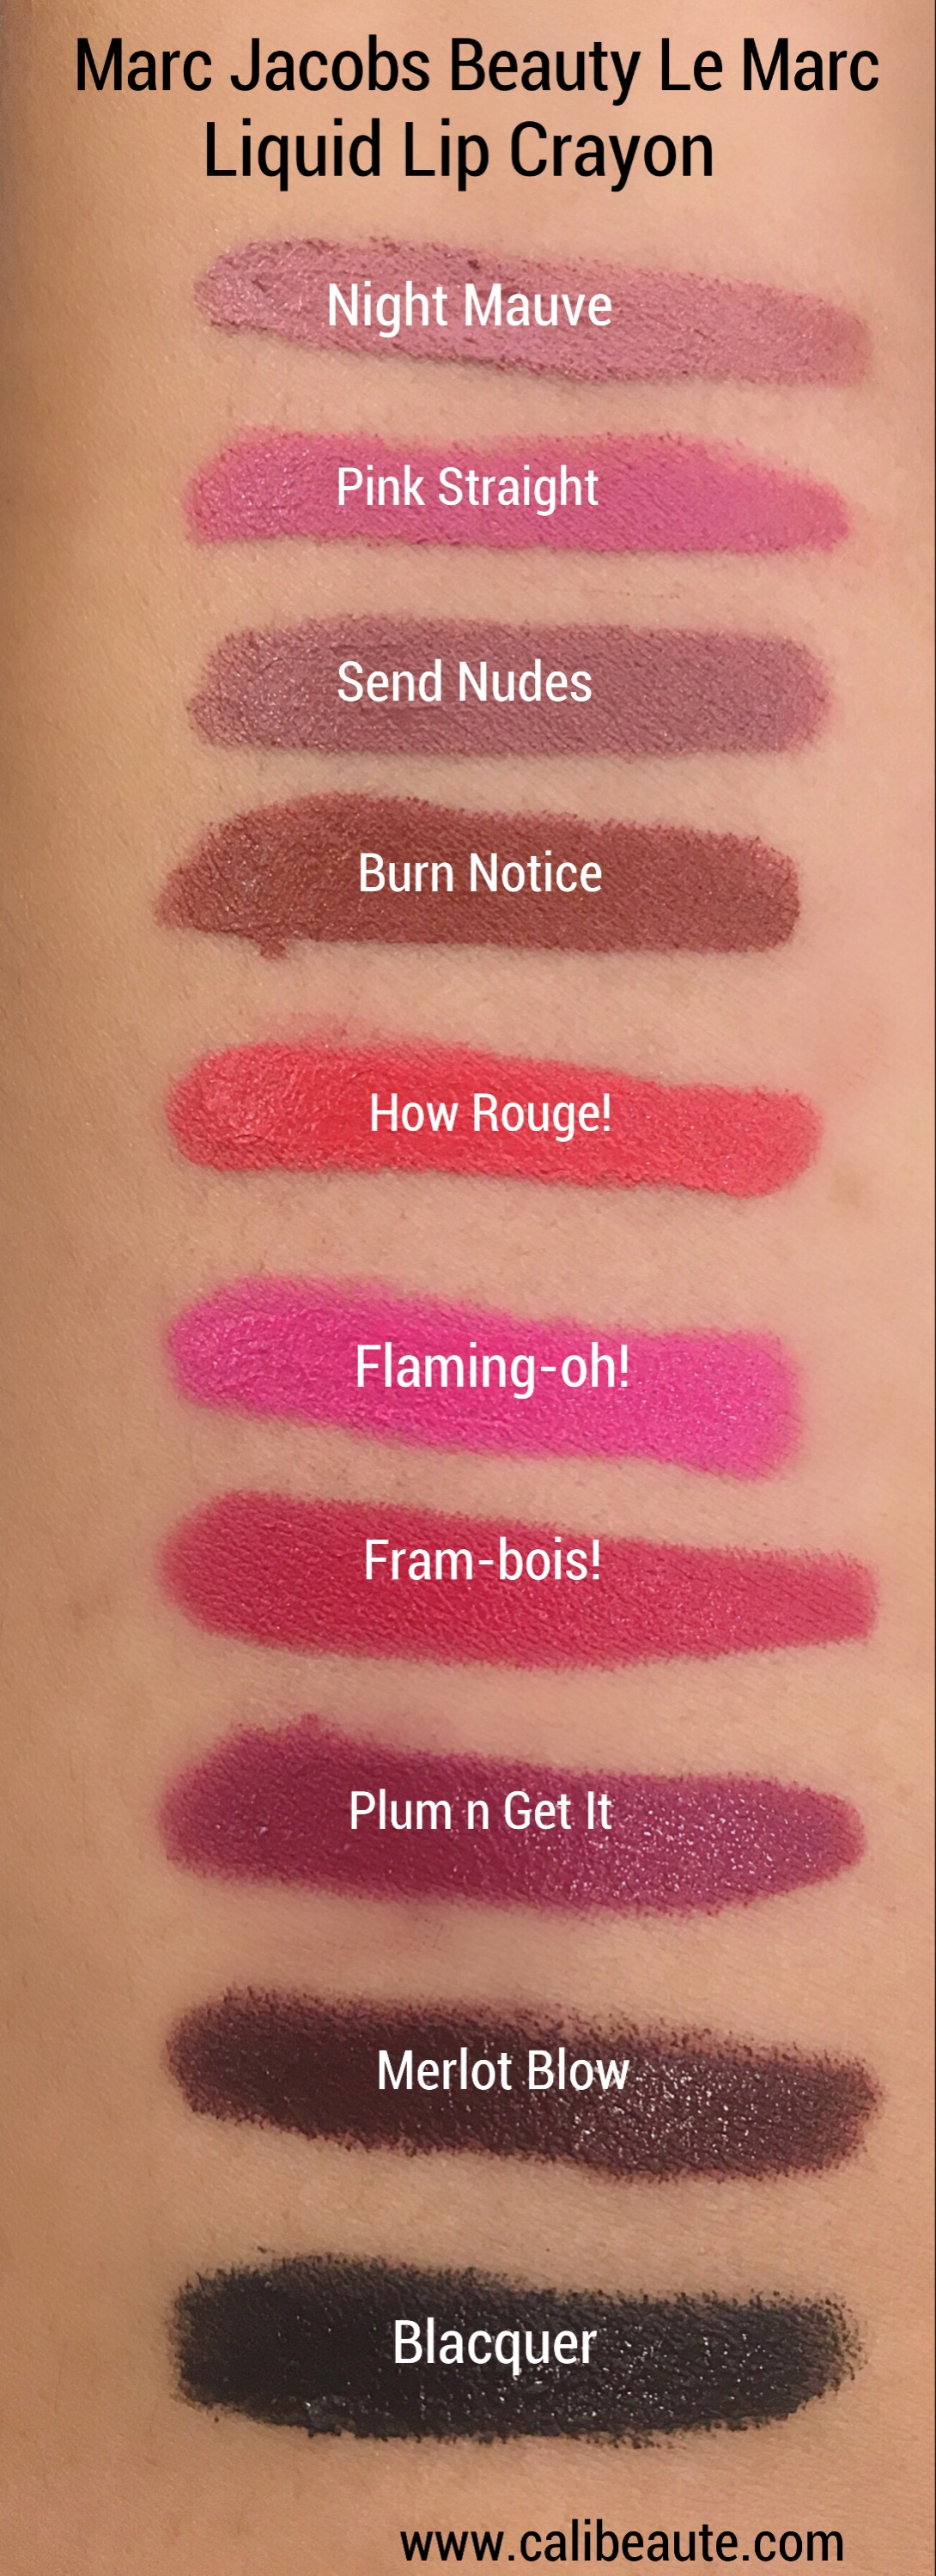 Marc Jacobs Beauty Le Marc Liquid Lipstick Crayon swatches and review www.calibeaute.com